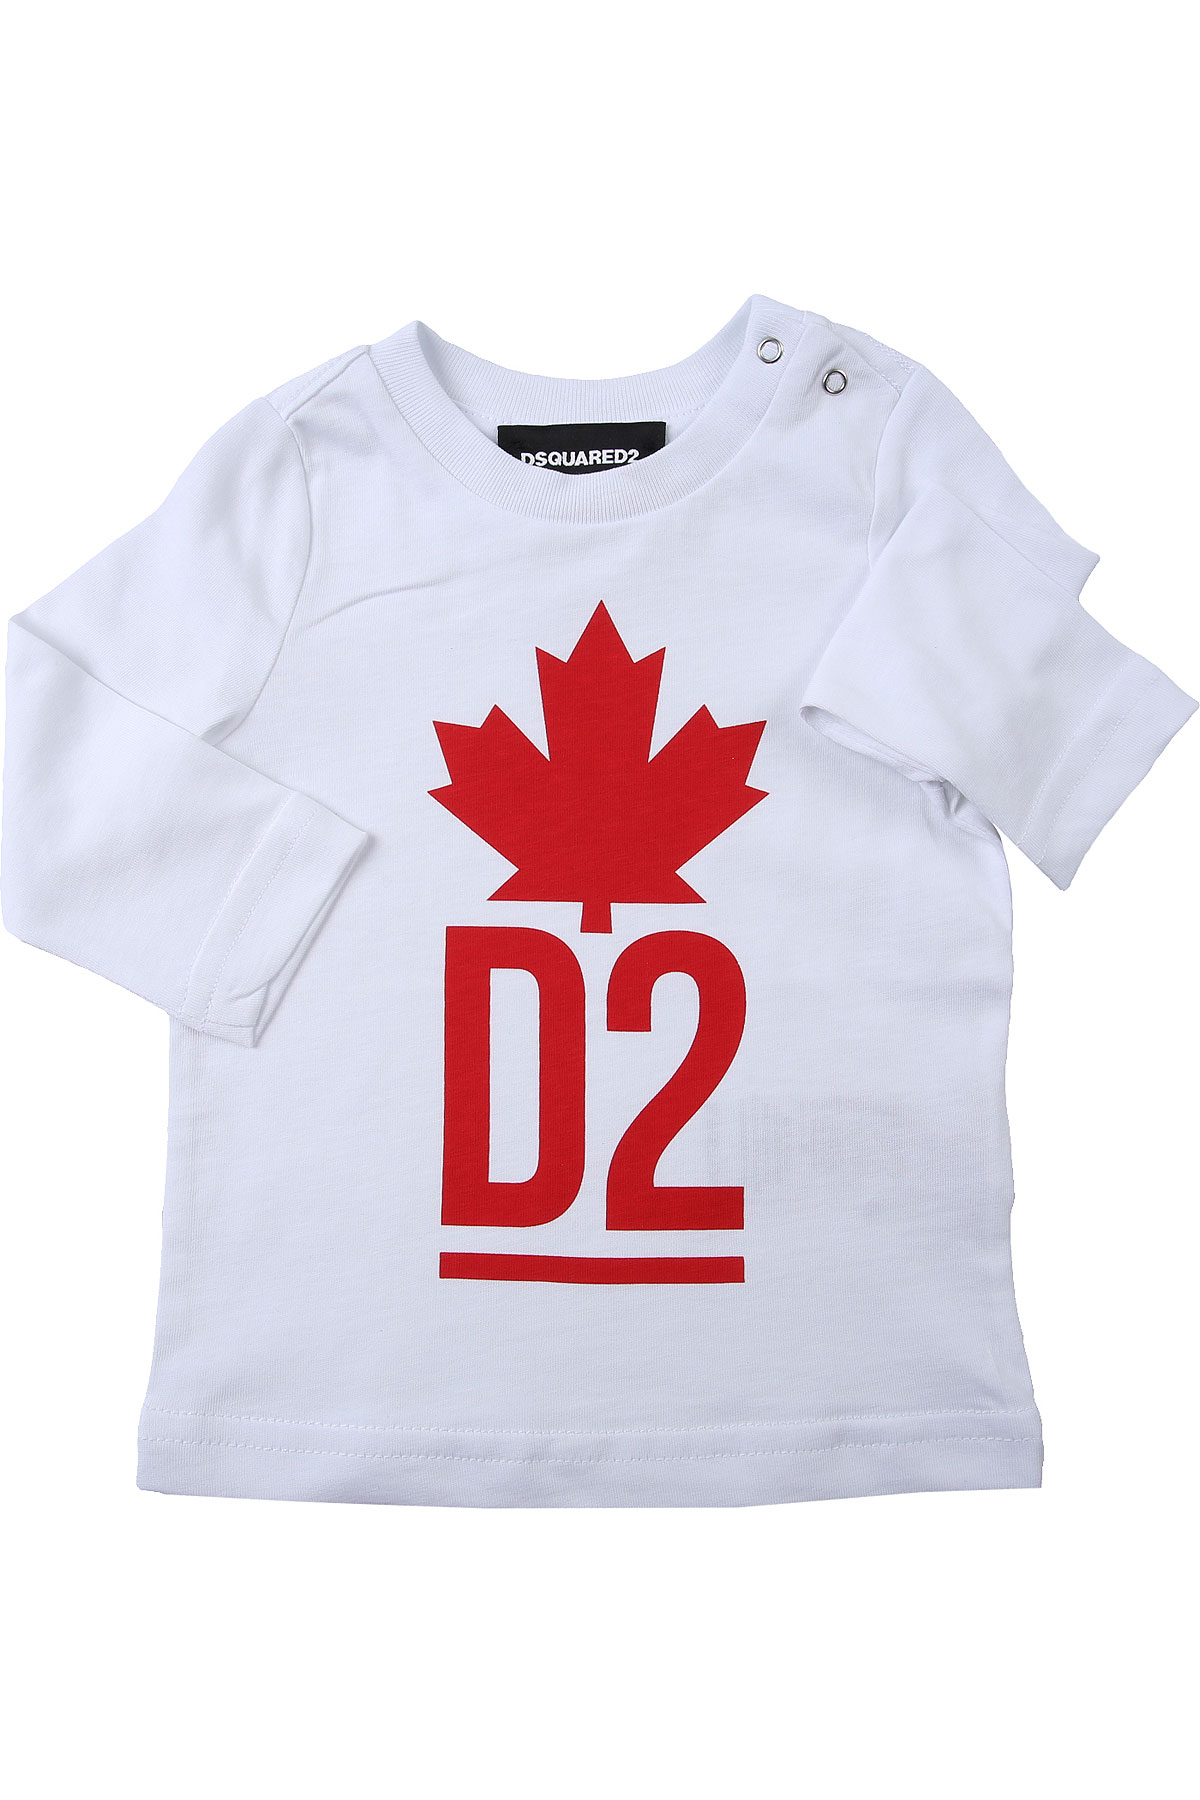 Dsquared2 Baby T-Shirt for Boys On Sale in Outlet, White, Cotton, 2019, 3Y 9M